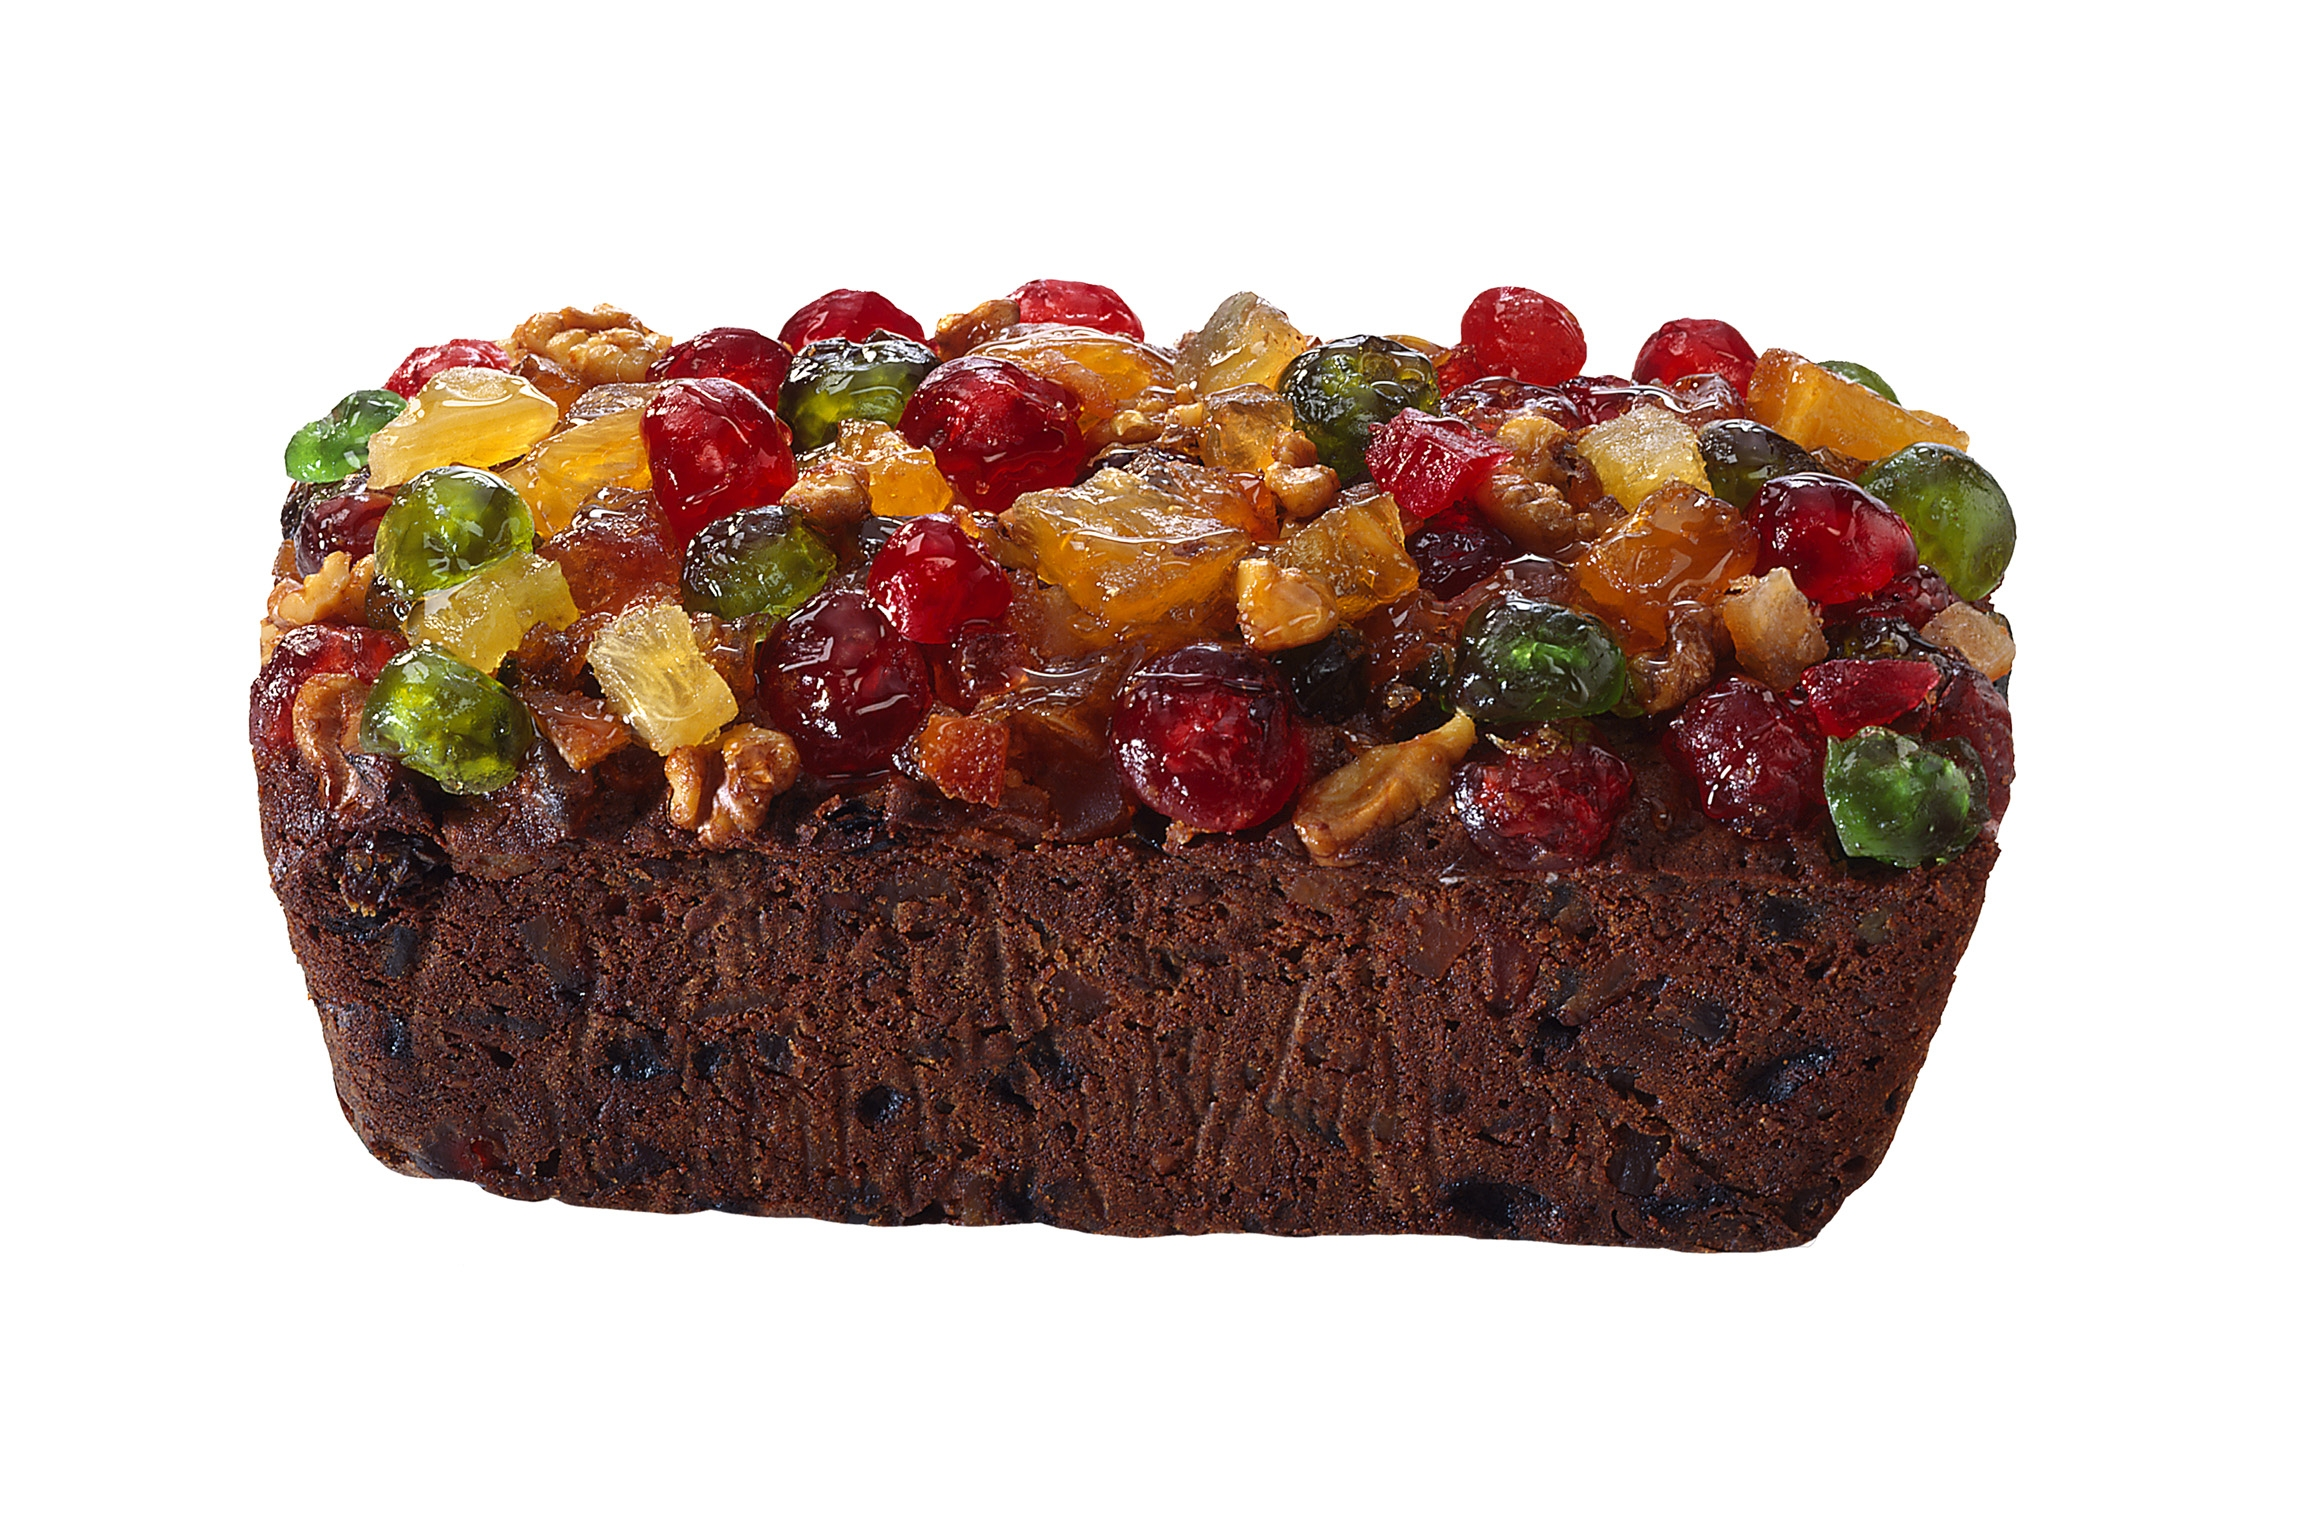 list of fruits and vegetables christmas fruit cake